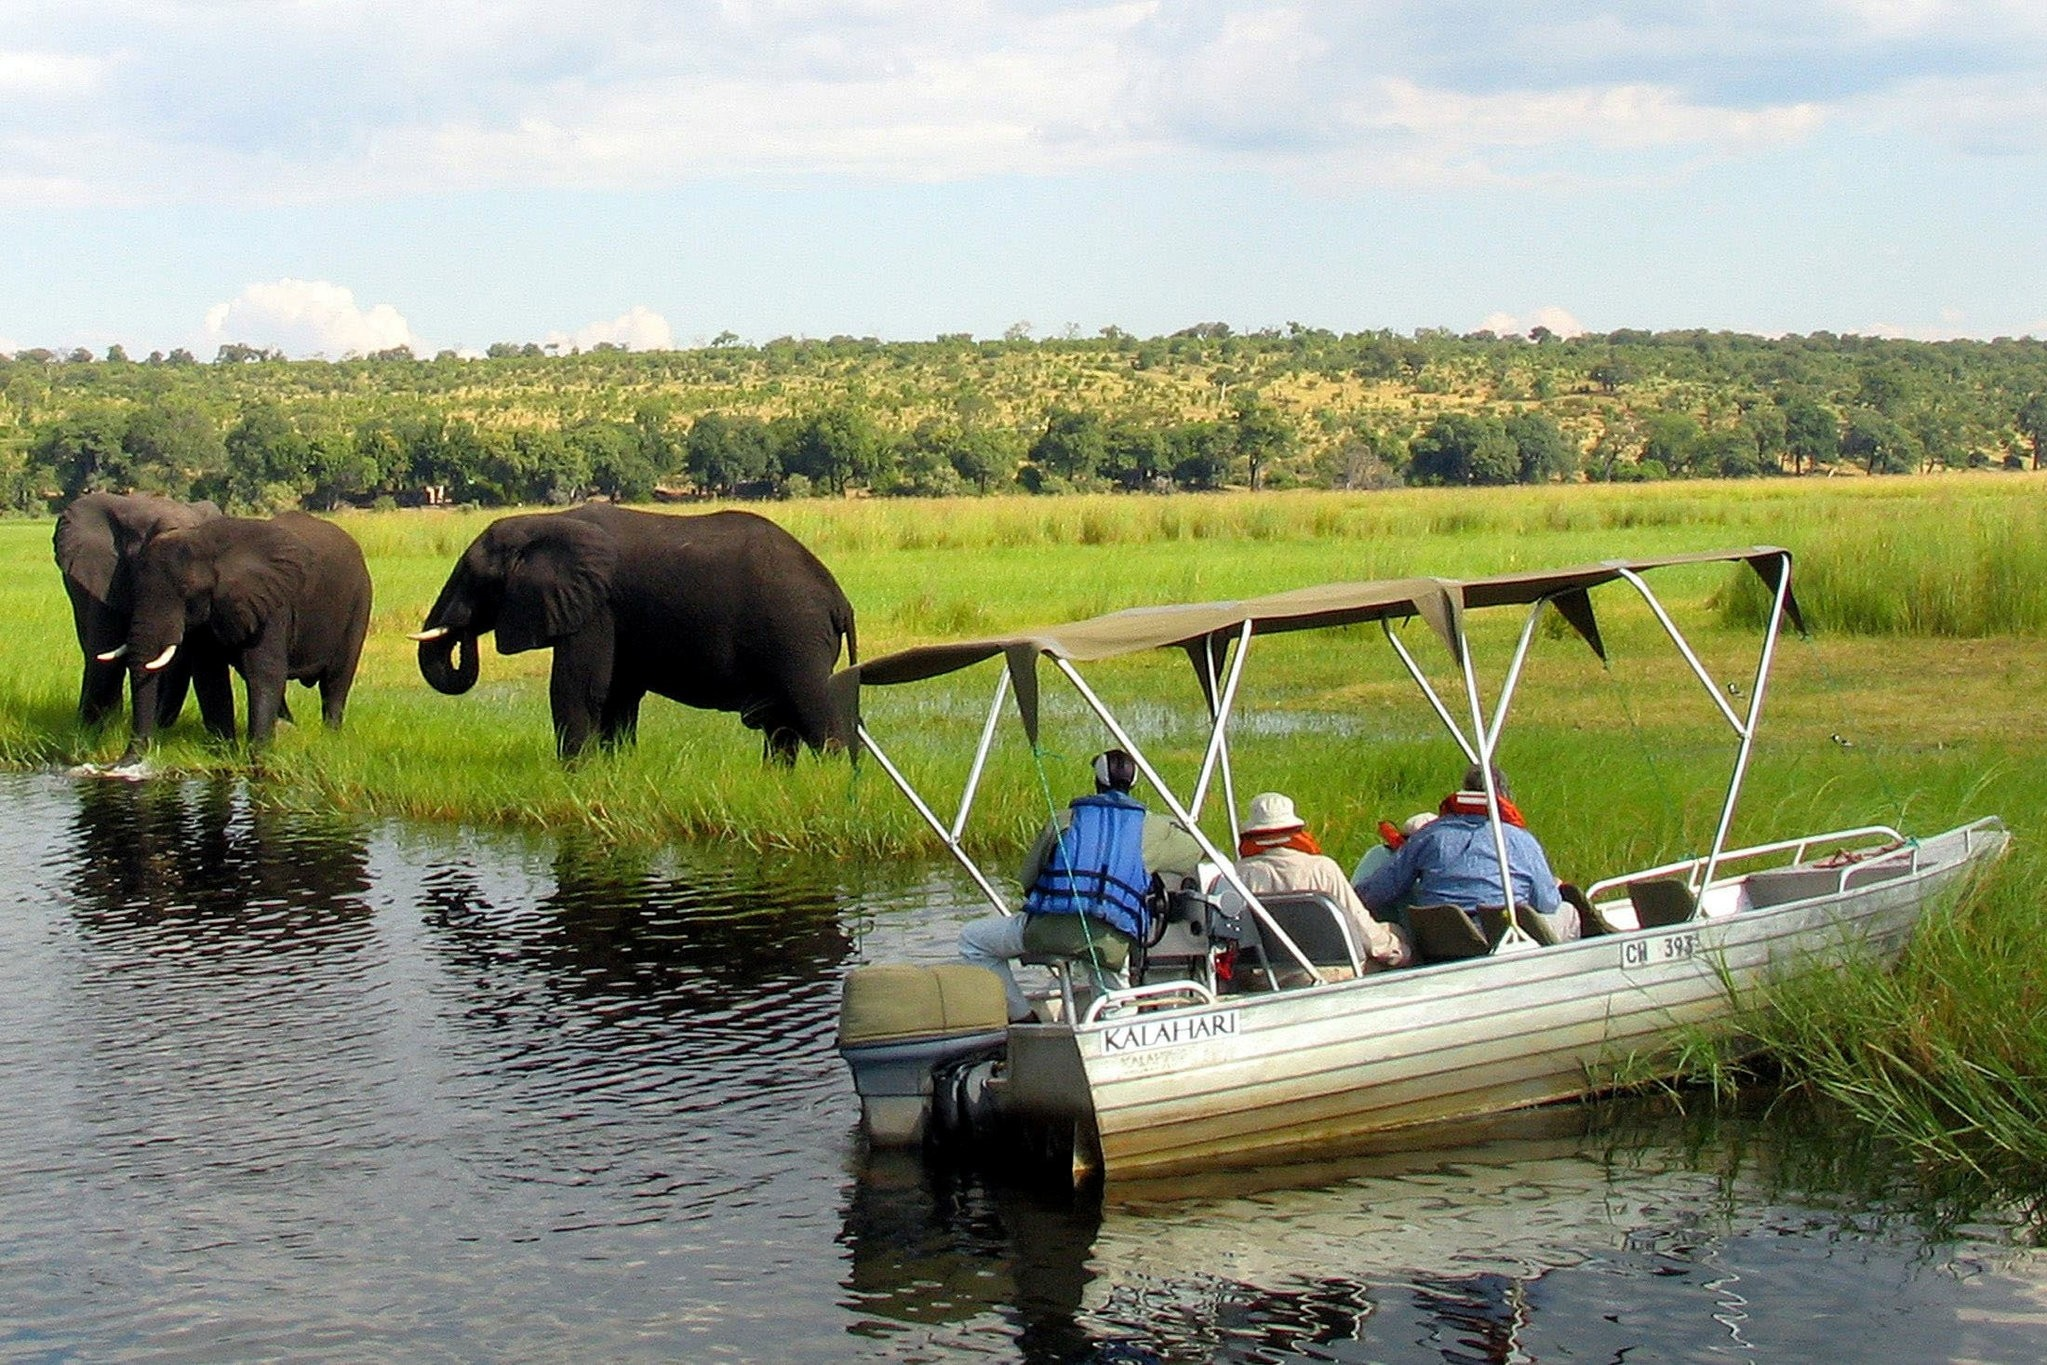 Foreign tourists in safari riverboats observe elephants along the Chobe river bank near Botswana's northern border. (Reuters Photo)